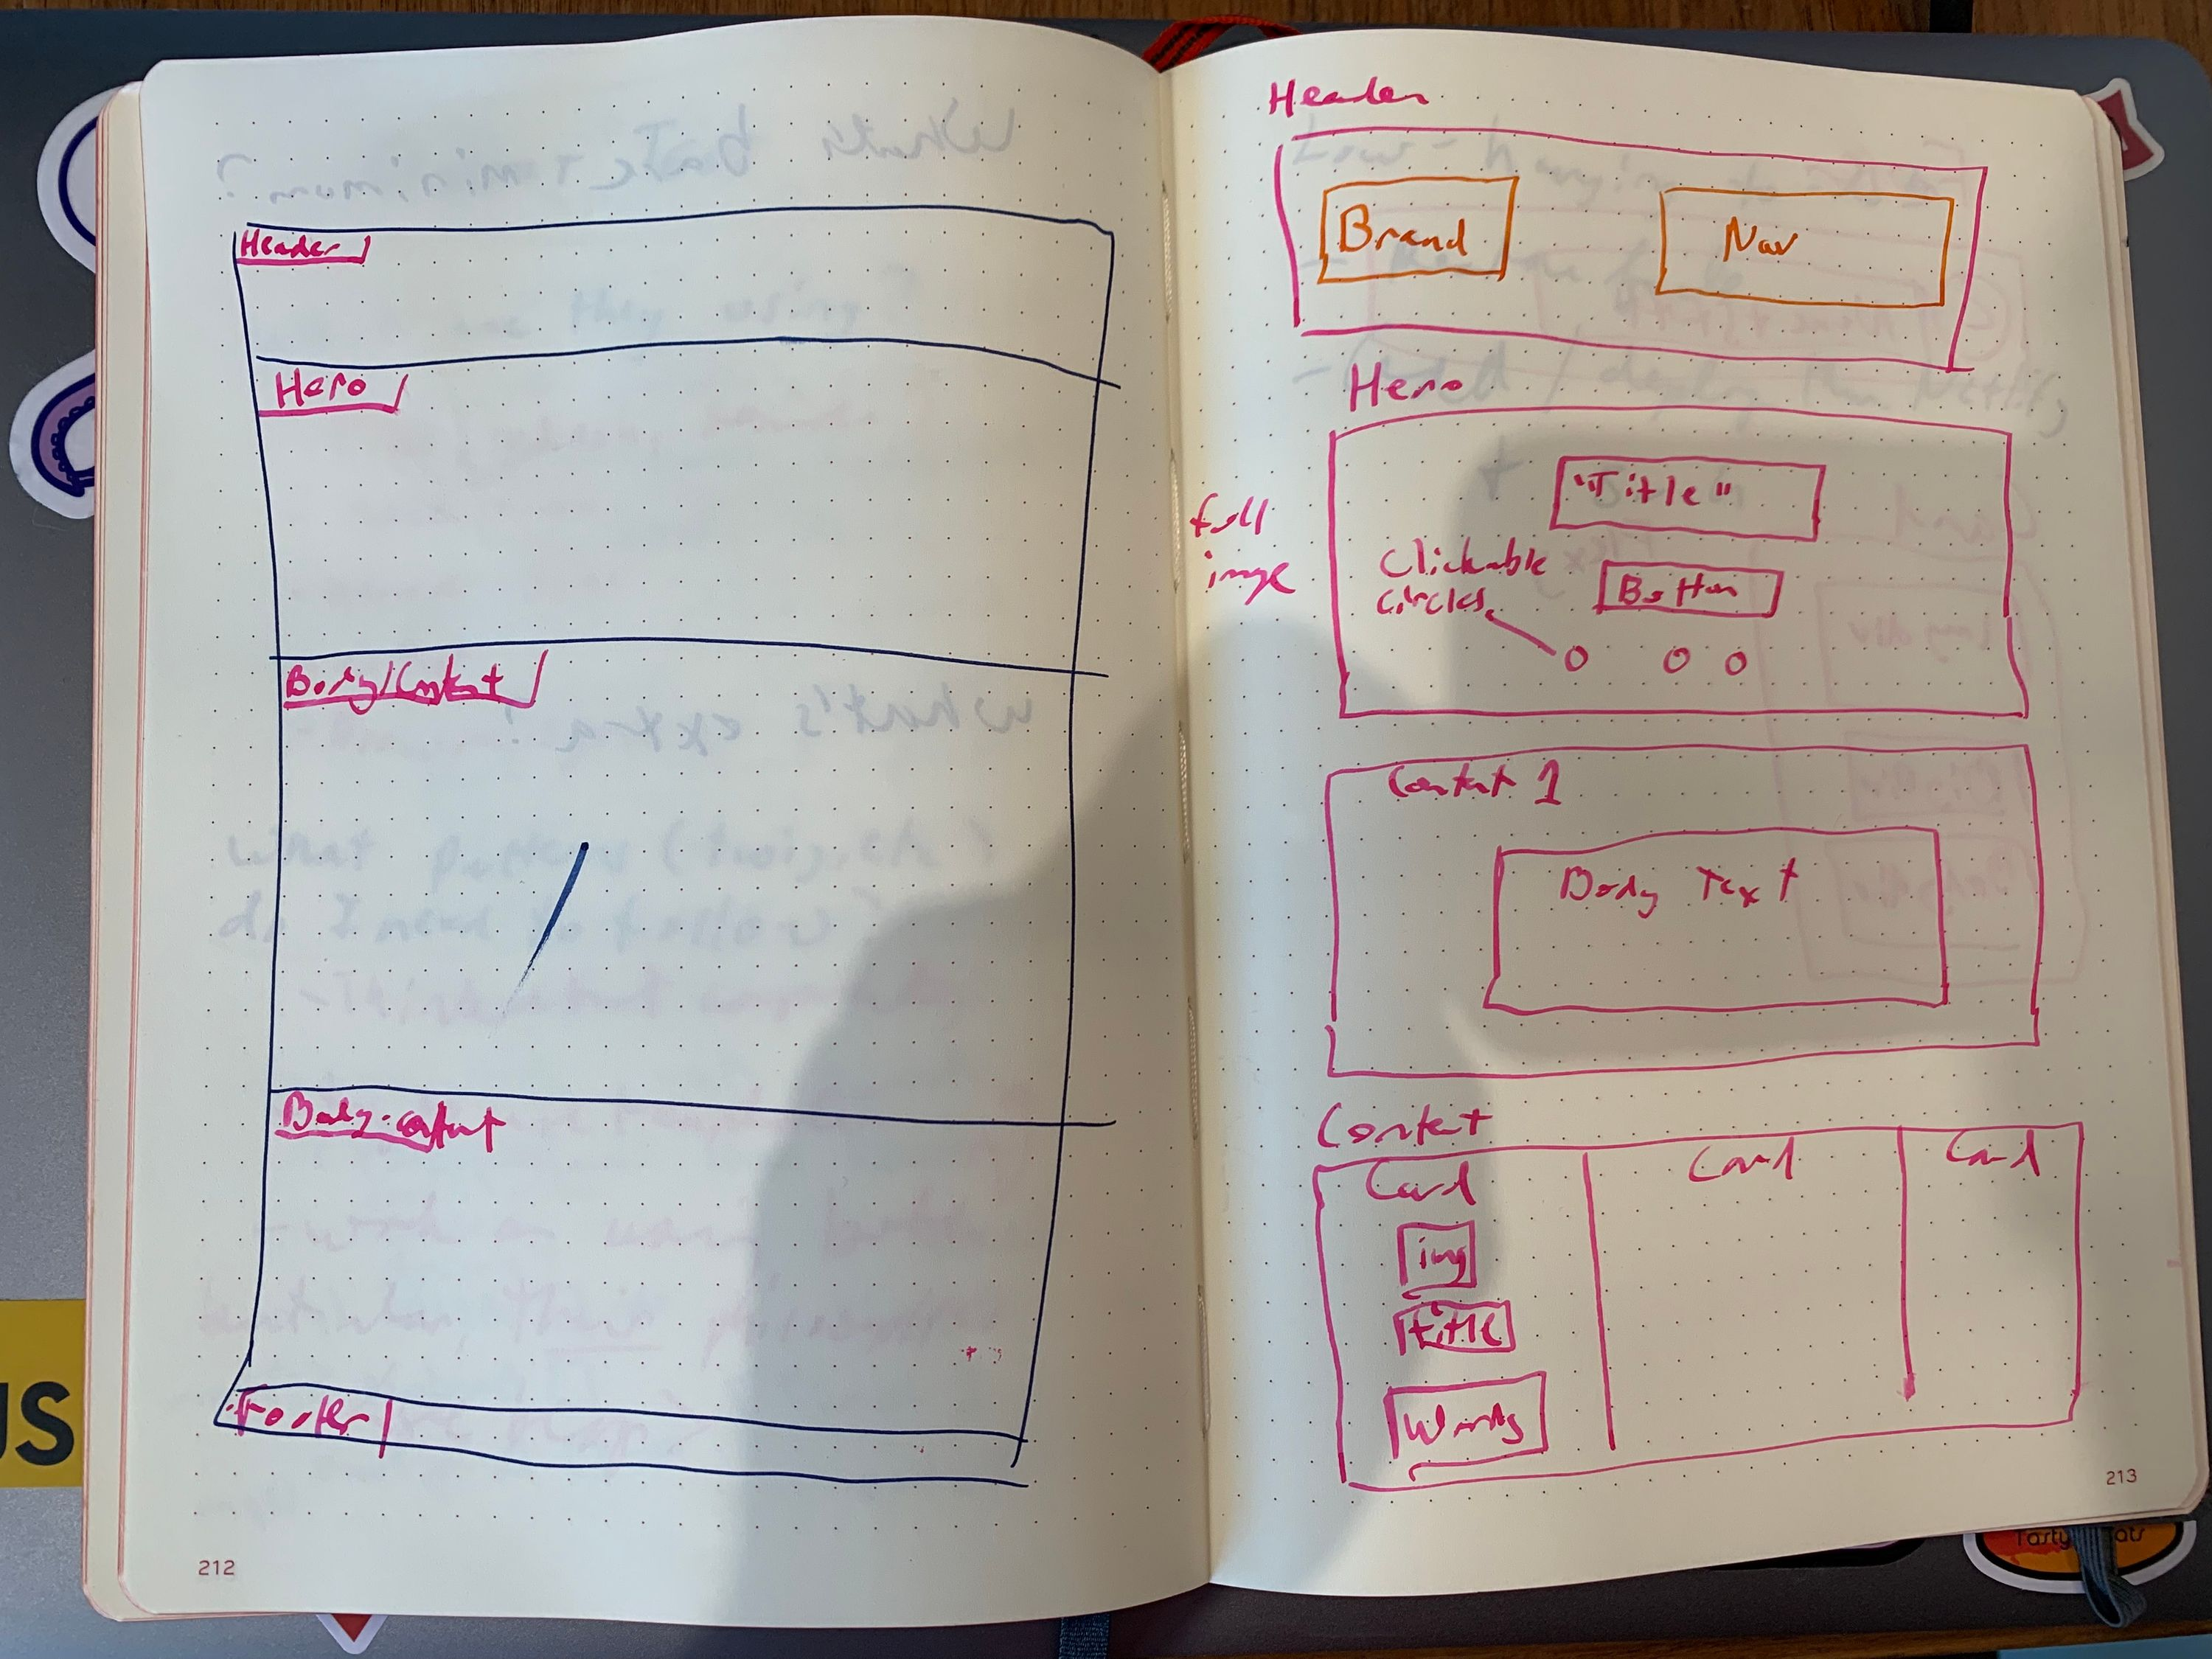 two-page notebook spread with wireframe sketches done in ink